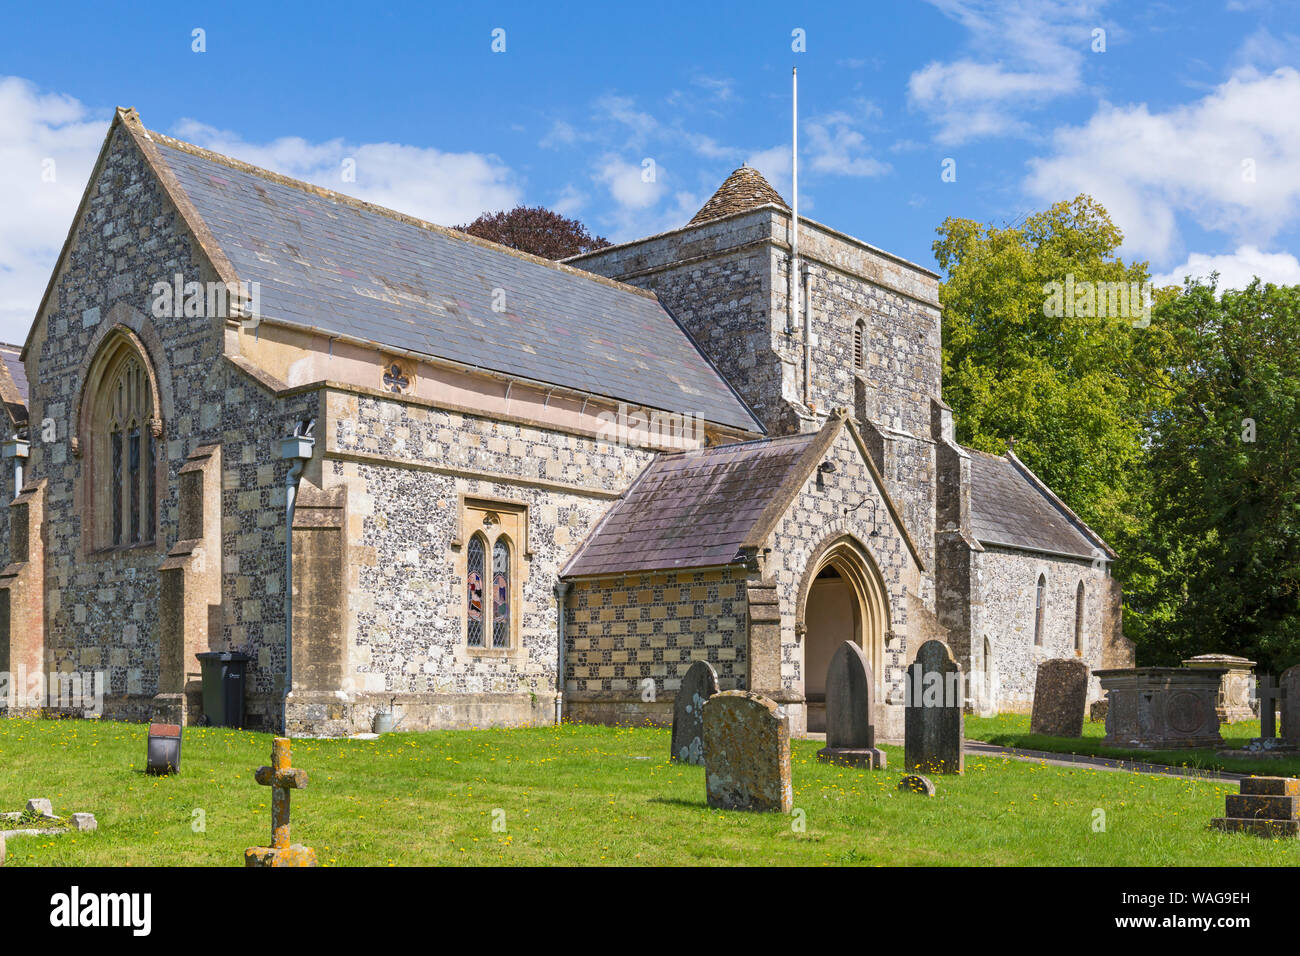 St Thomas a Becket church at Tilshead, near Salisbury, Wiltshire UK on a warm sunny day in August Stock Photo